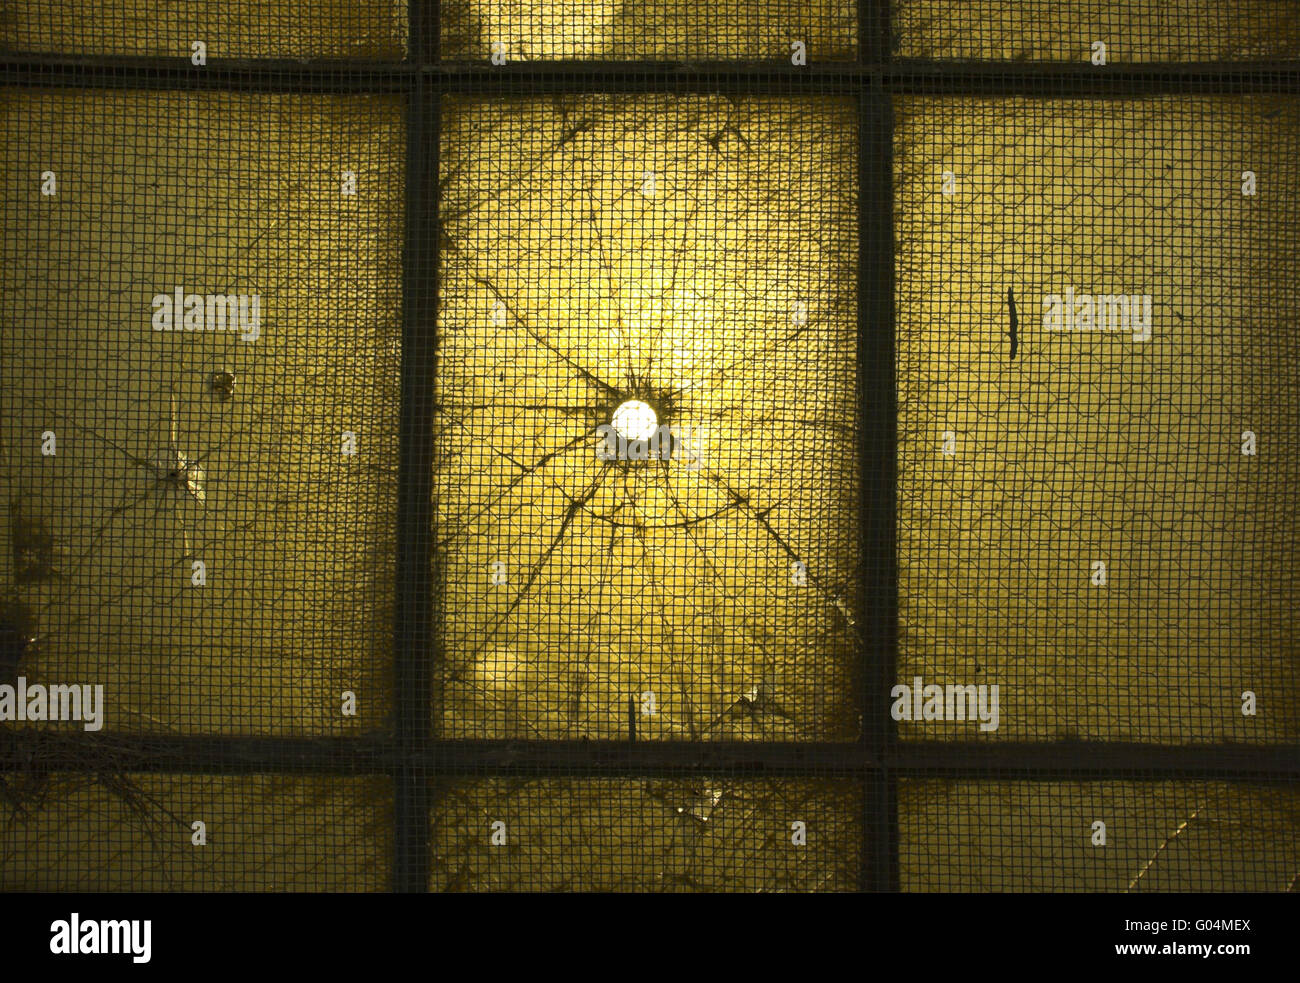 Hole in the window with light coming through it - Stock Image